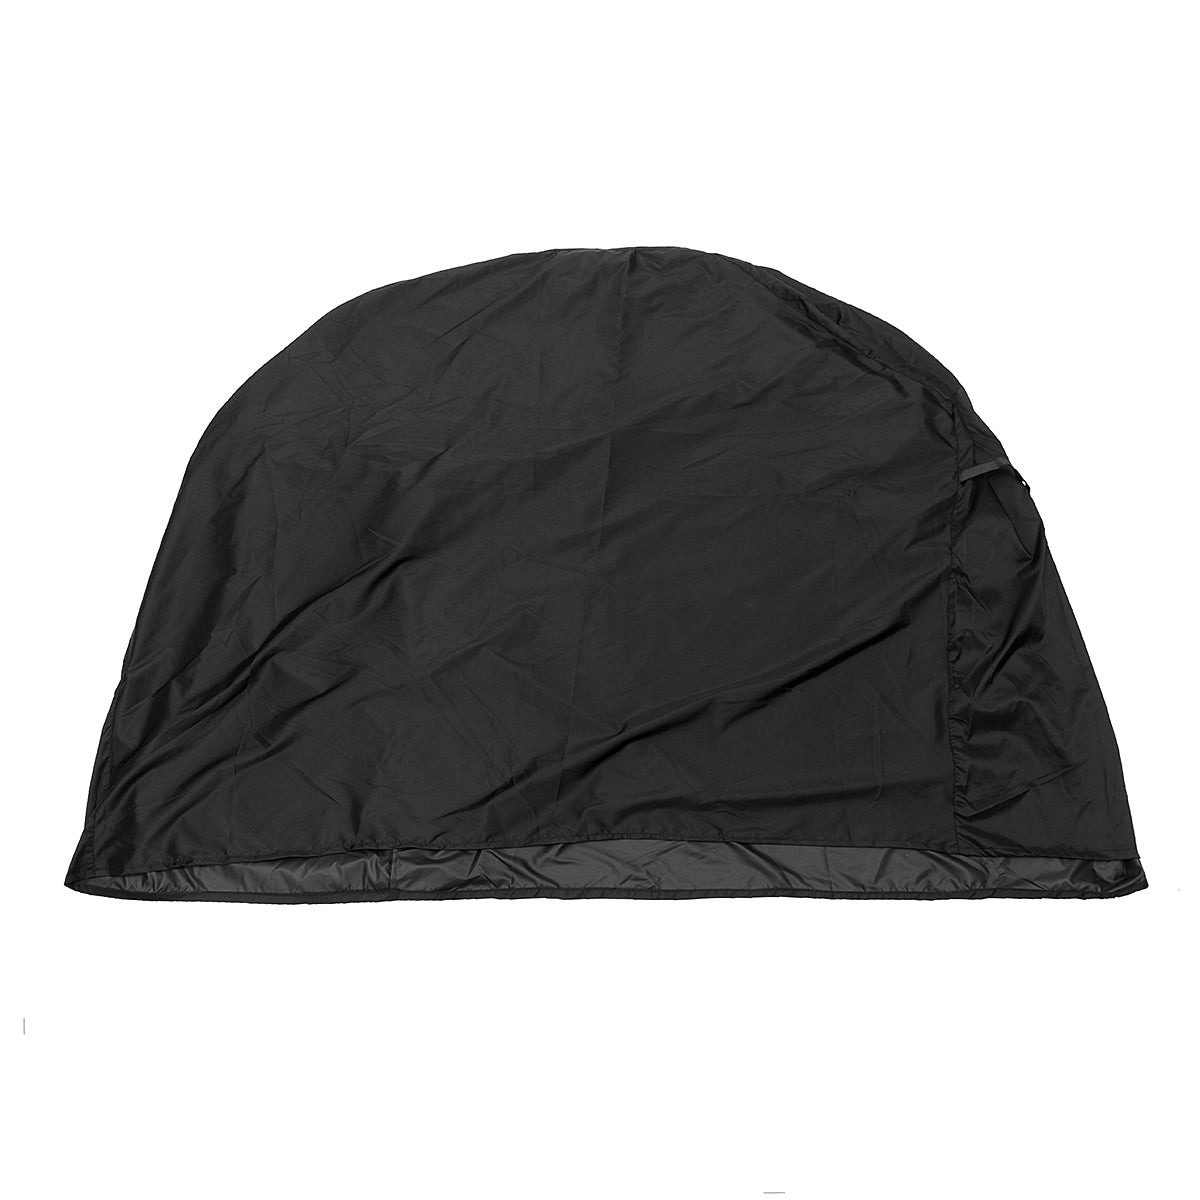 Heavy-duty Waterproof BBQ Grill Cover to Protect Your Barbecue From Sun, Wind, and Water Damage (72